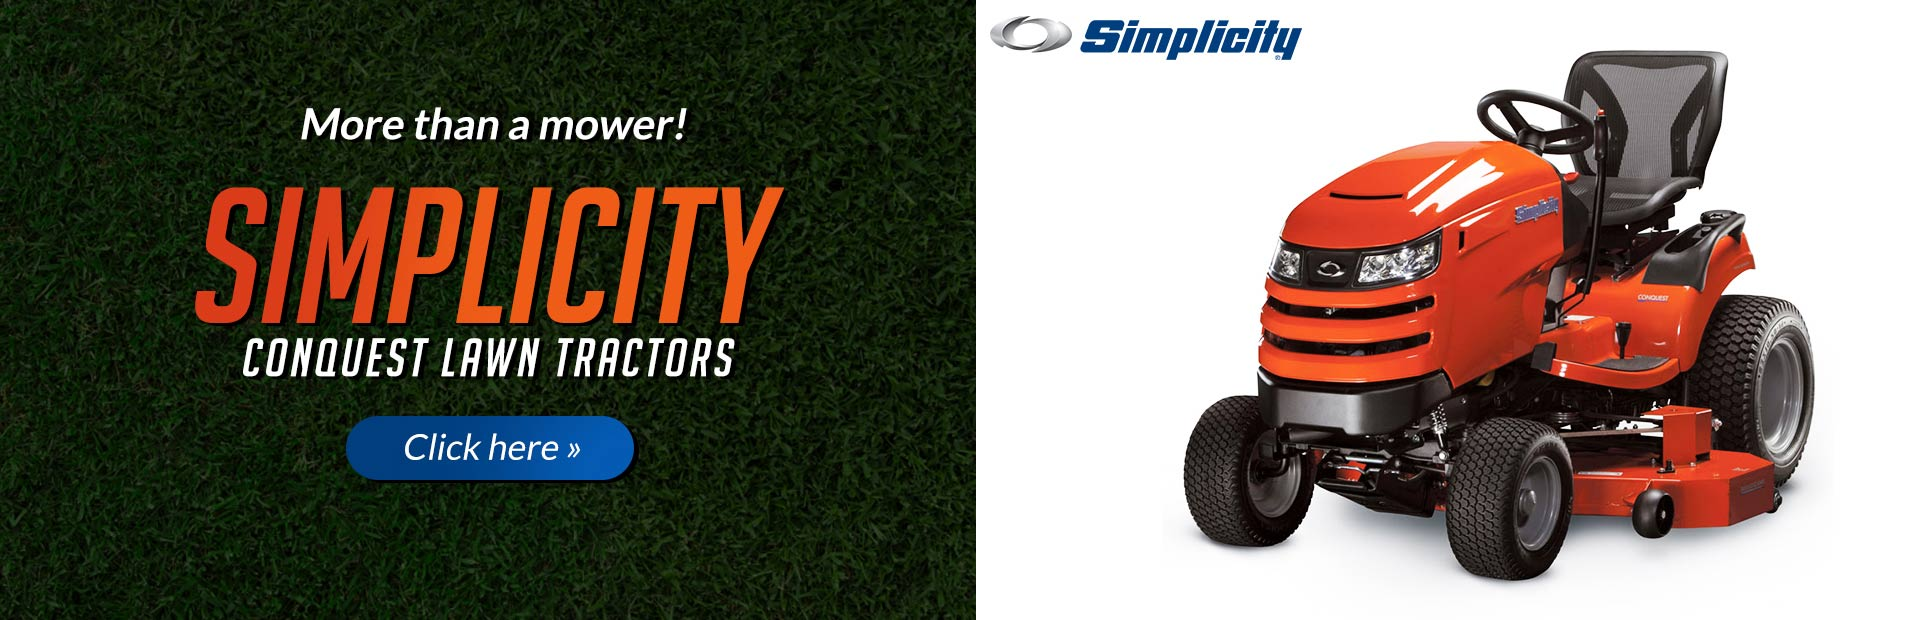 Simplicity Conquest lawn tractors are more than just mowers! Click here to view our selection.